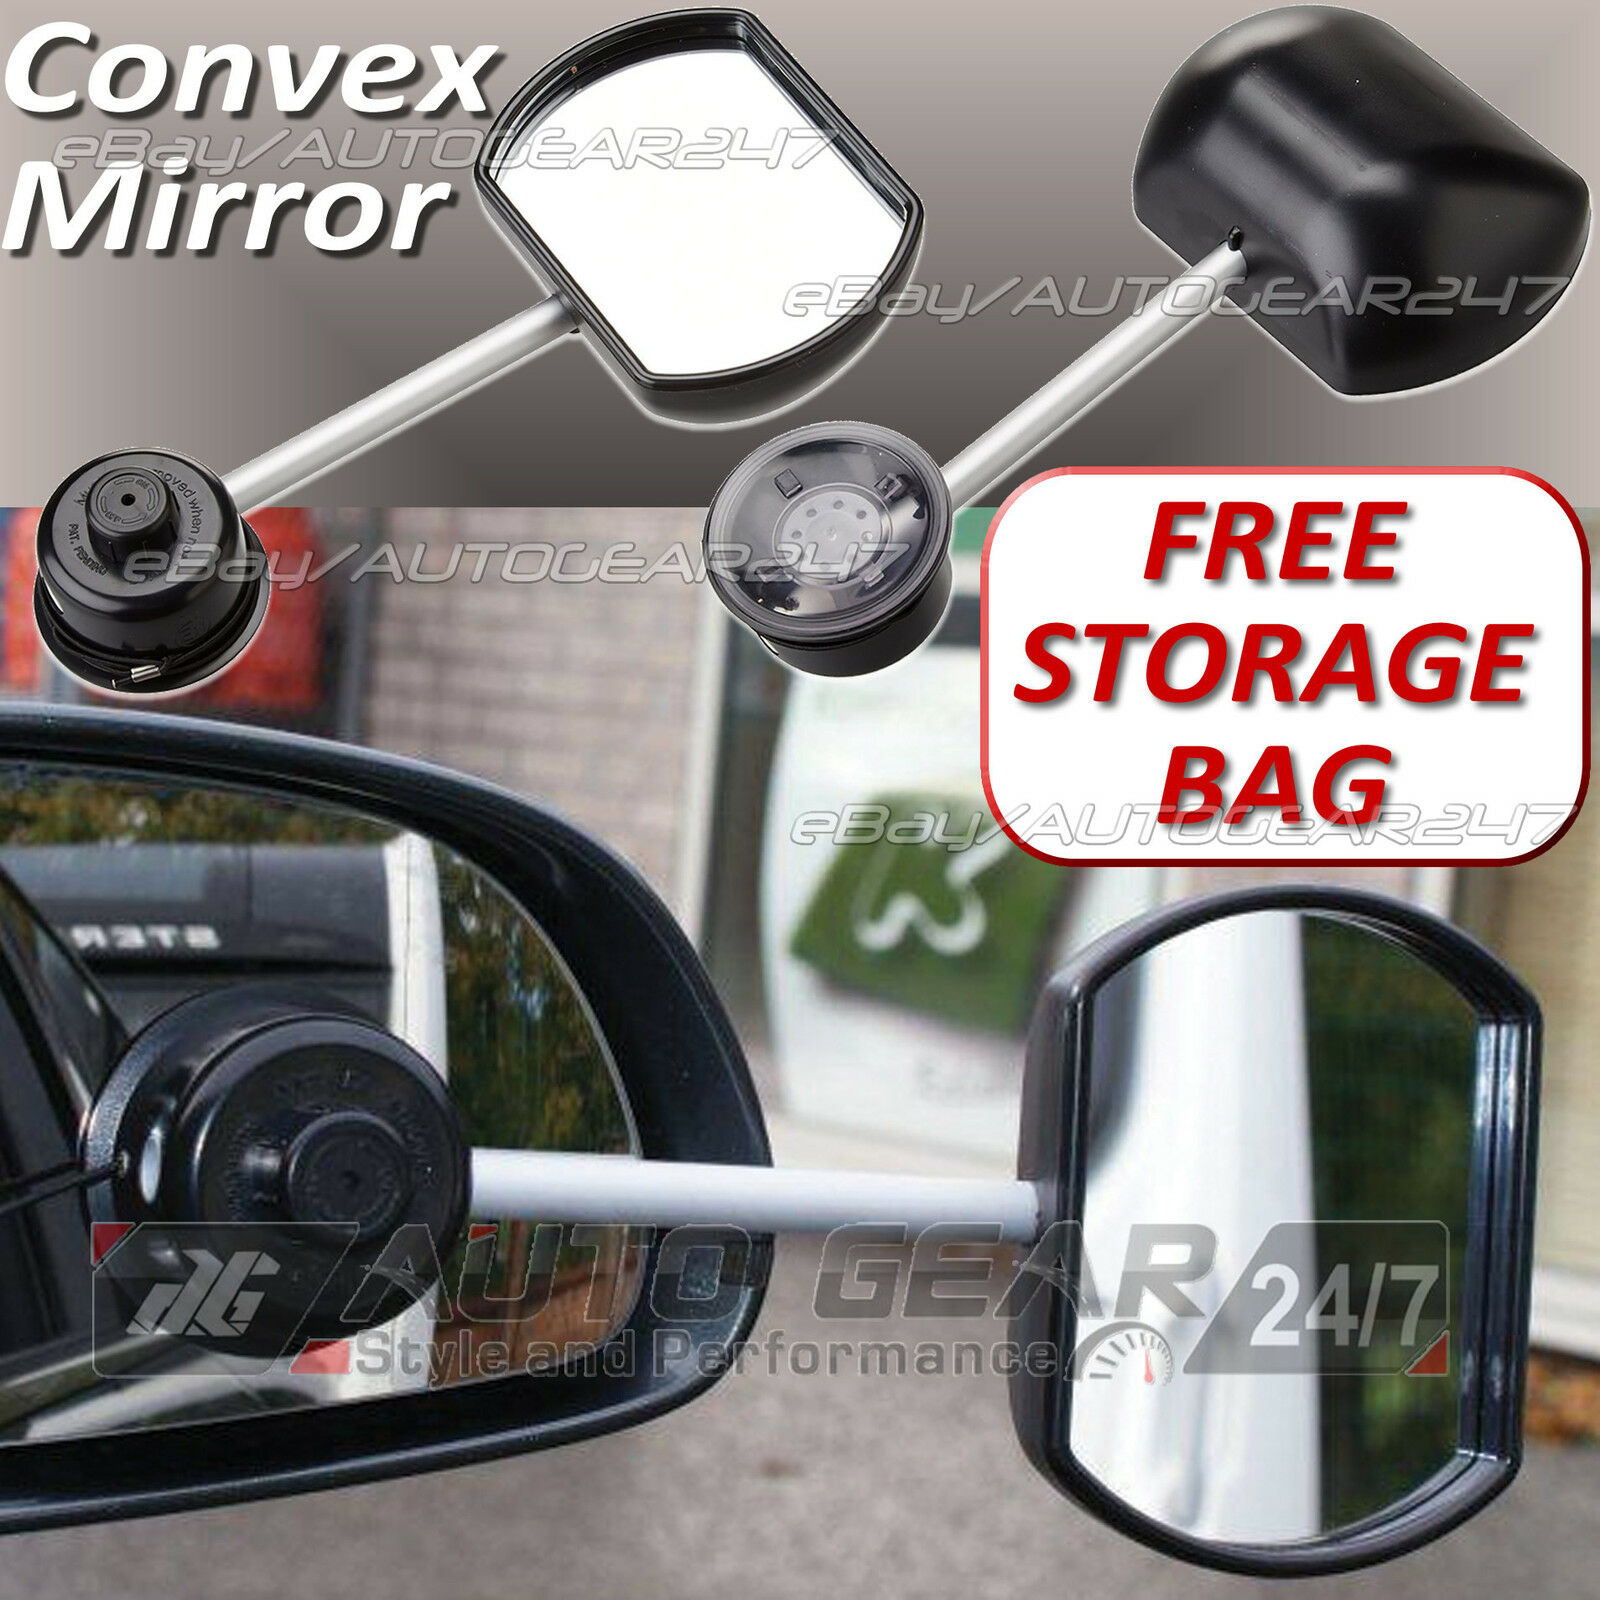 Streetwize LWACC36 Stick-On Towing Mirror Convex Glass